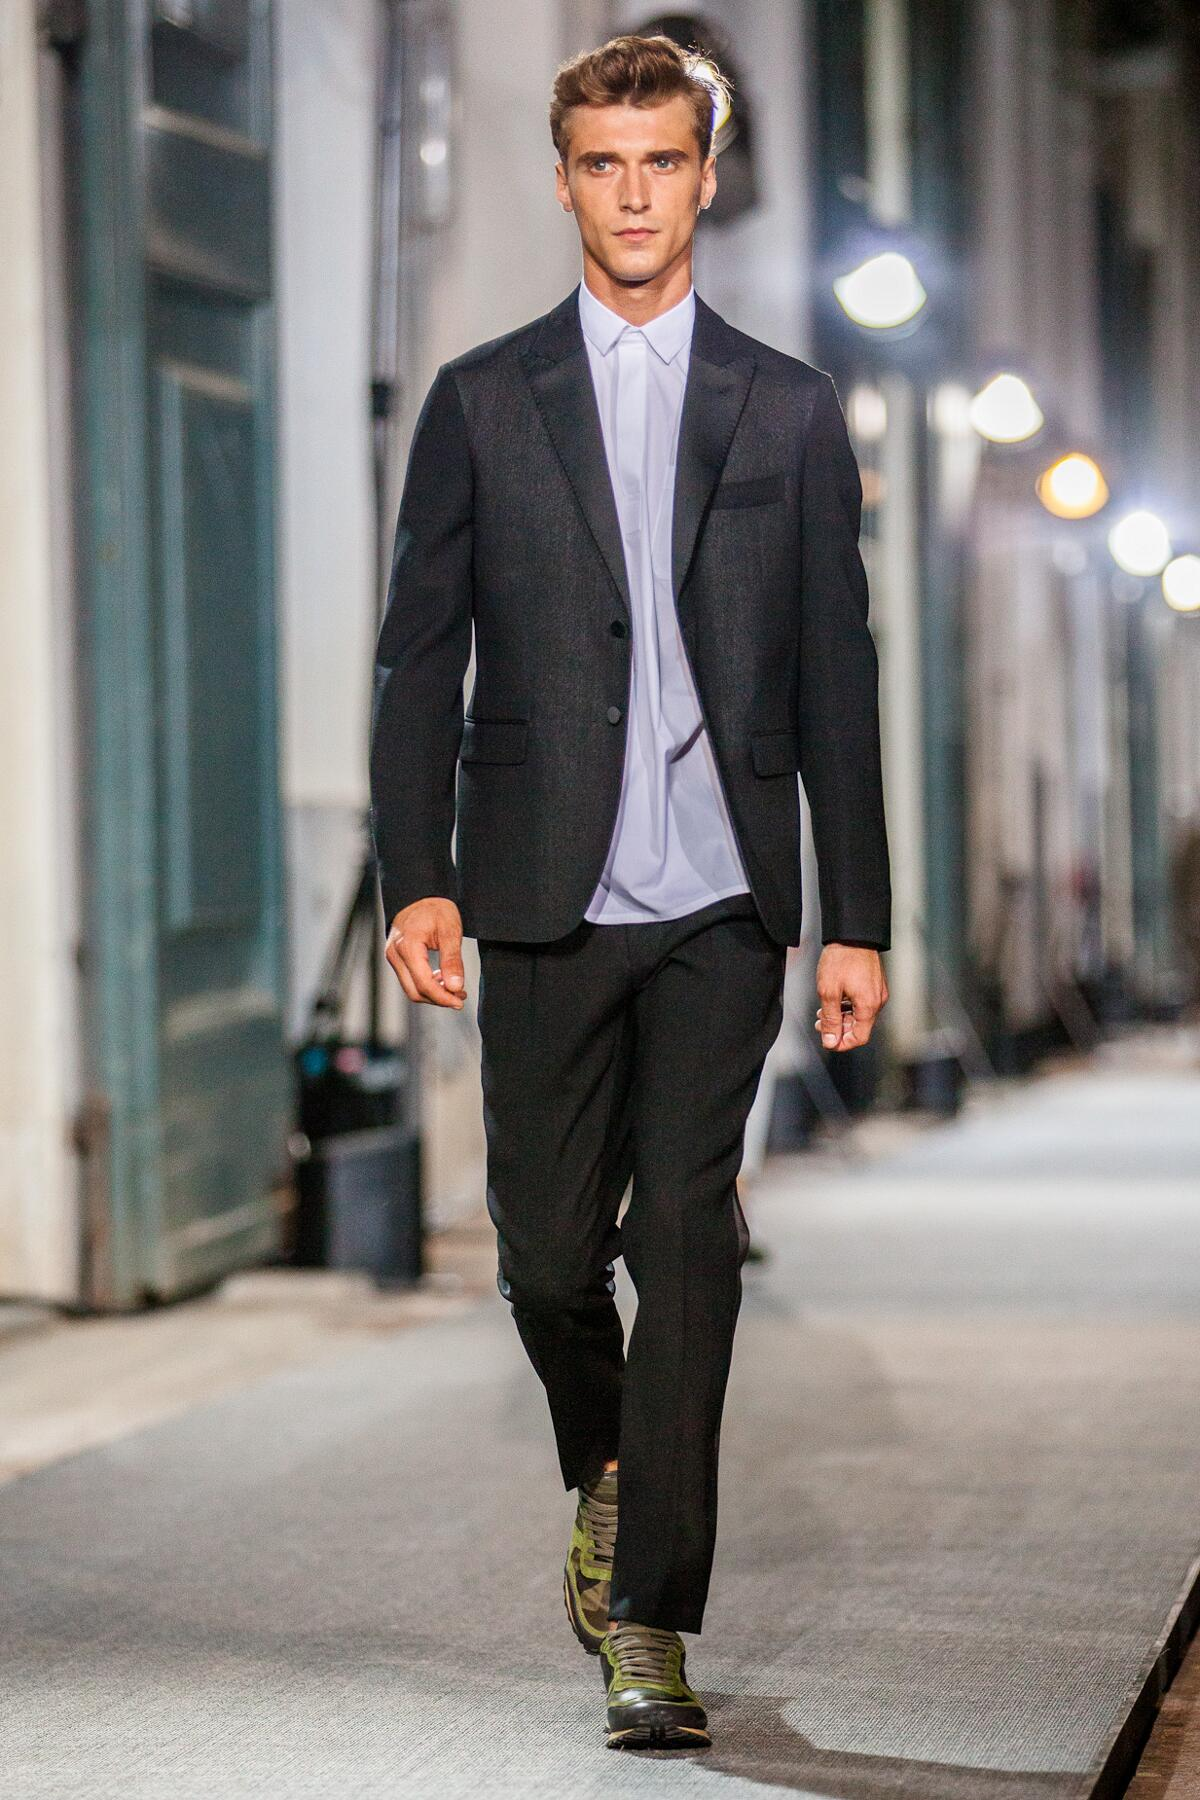 Valentino Spring Summer 2013 Menswear Collection Pitti Immagine Uomo